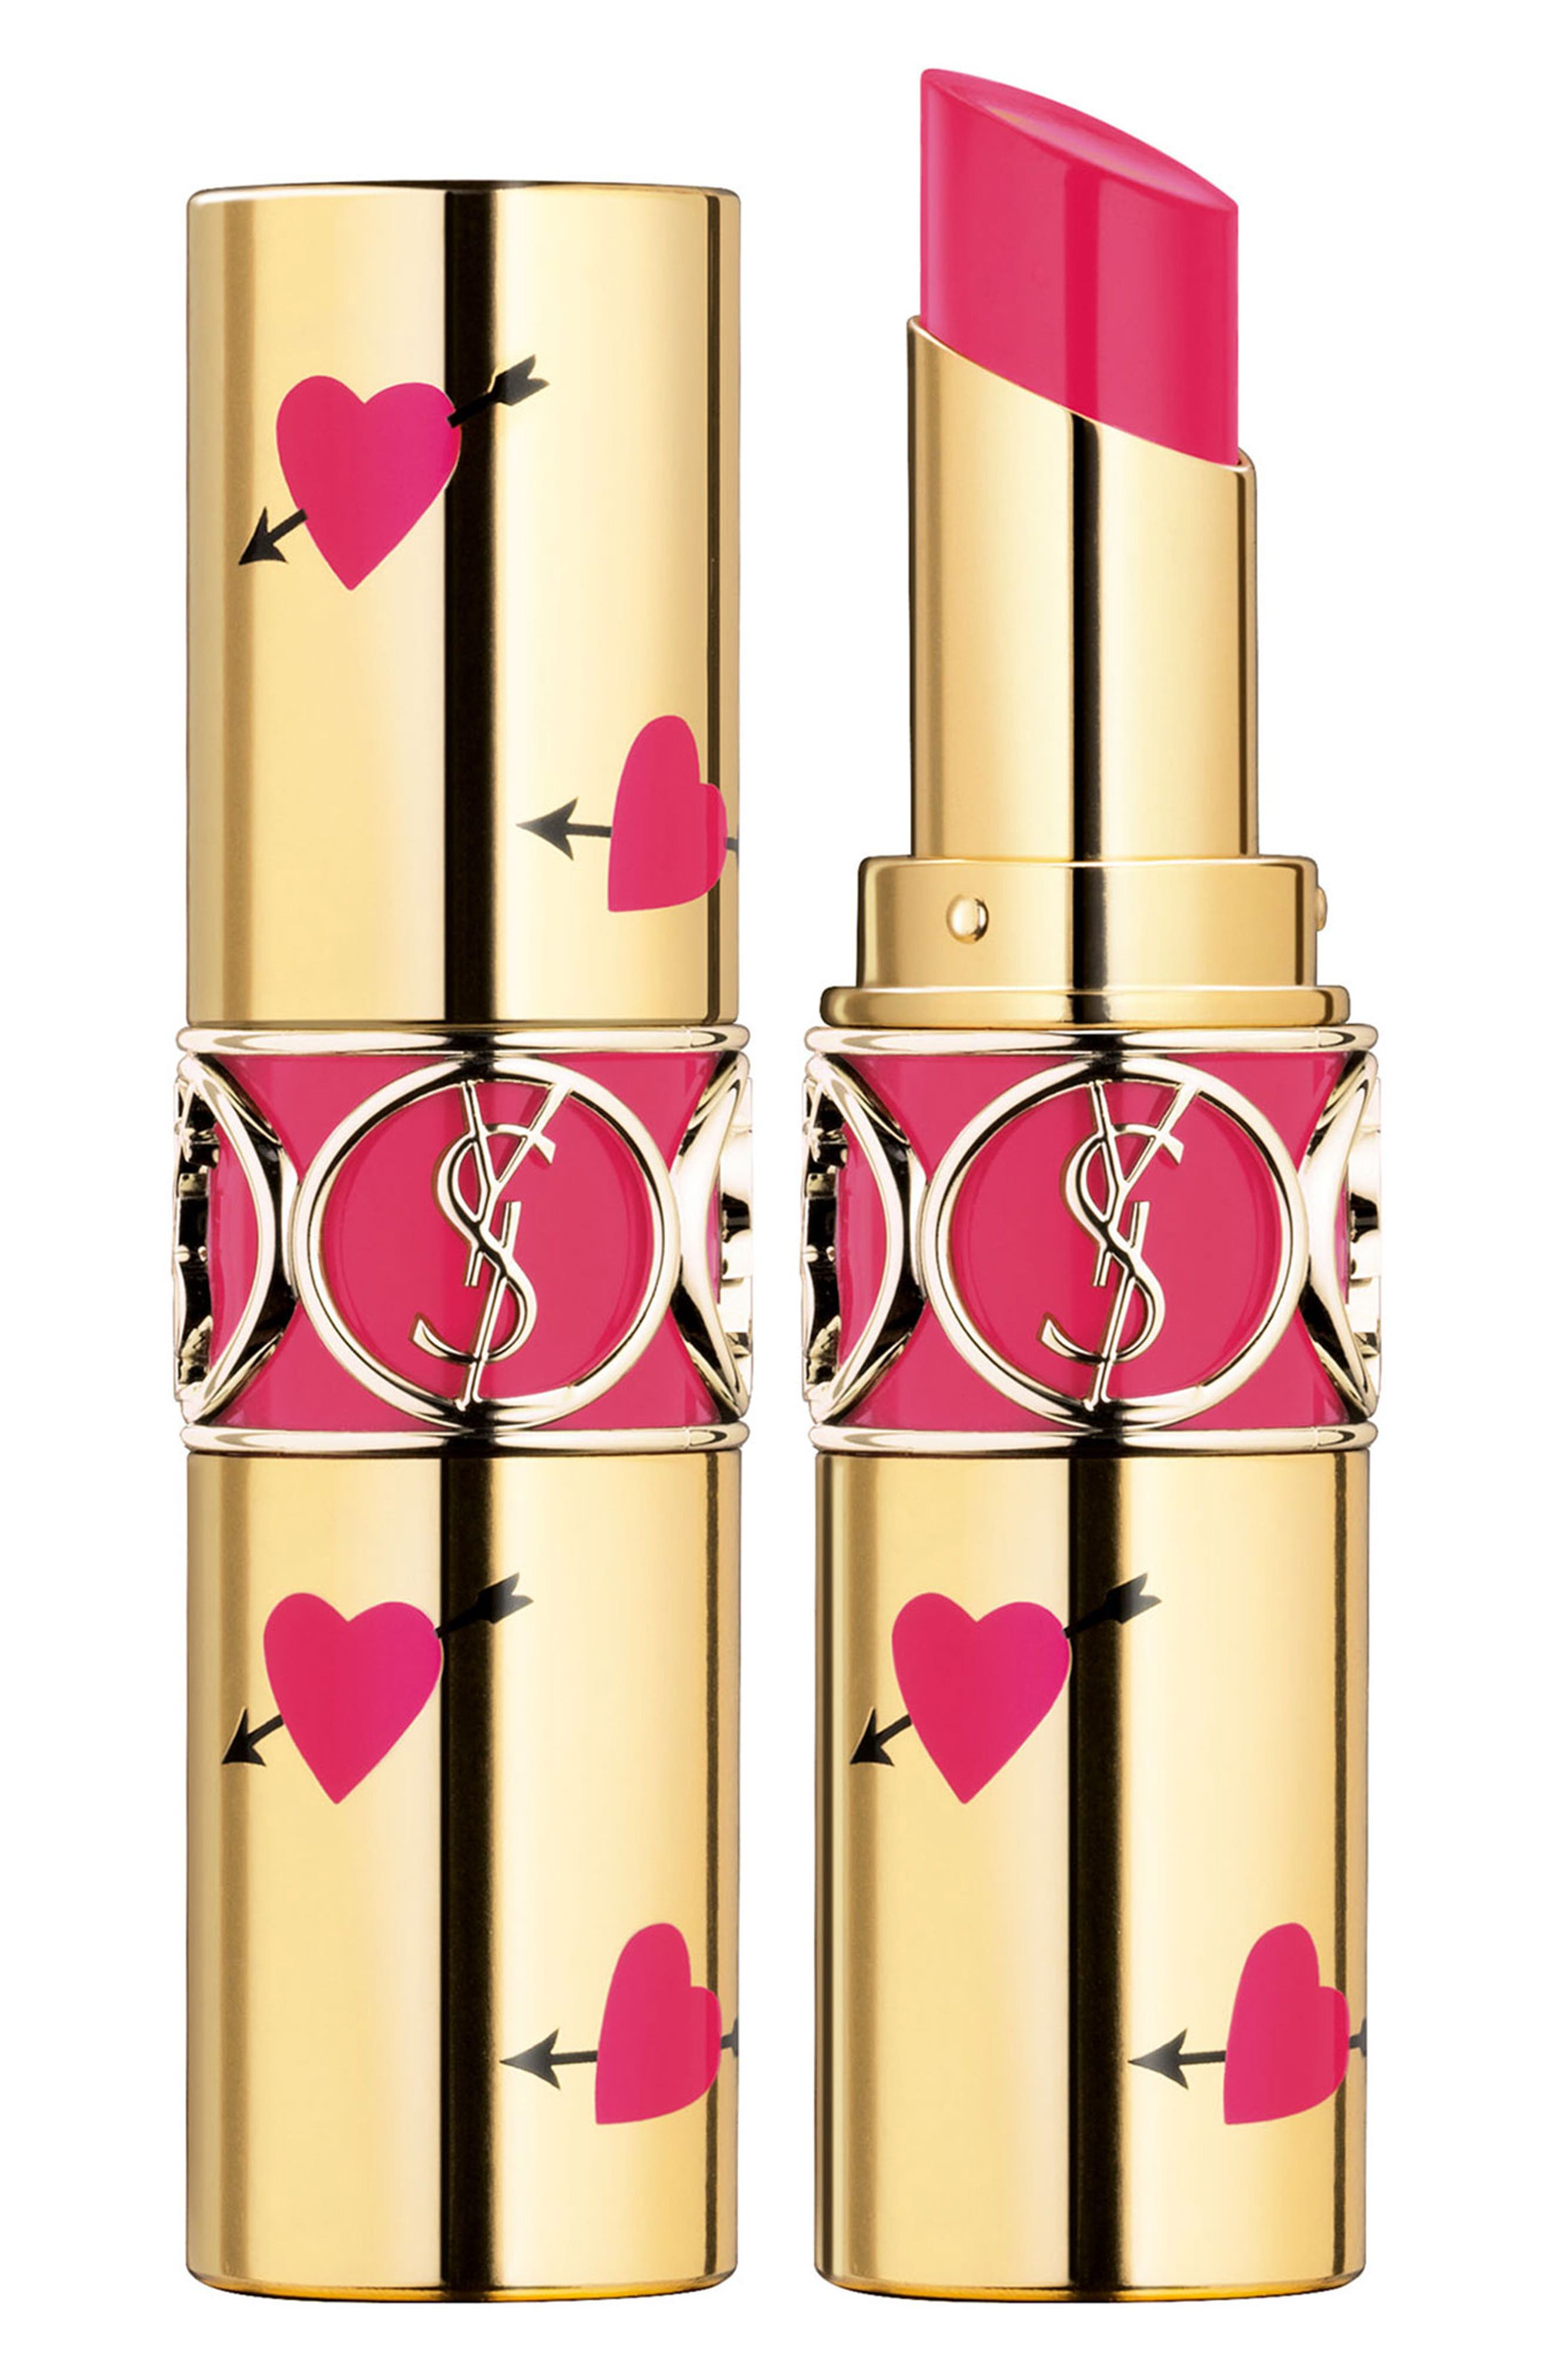 Yves Saint Laurent Heart And Arrow Rouge Volupte Shine Collector Oil-In-Stick Lipstick - 49 Rose Saint Germain